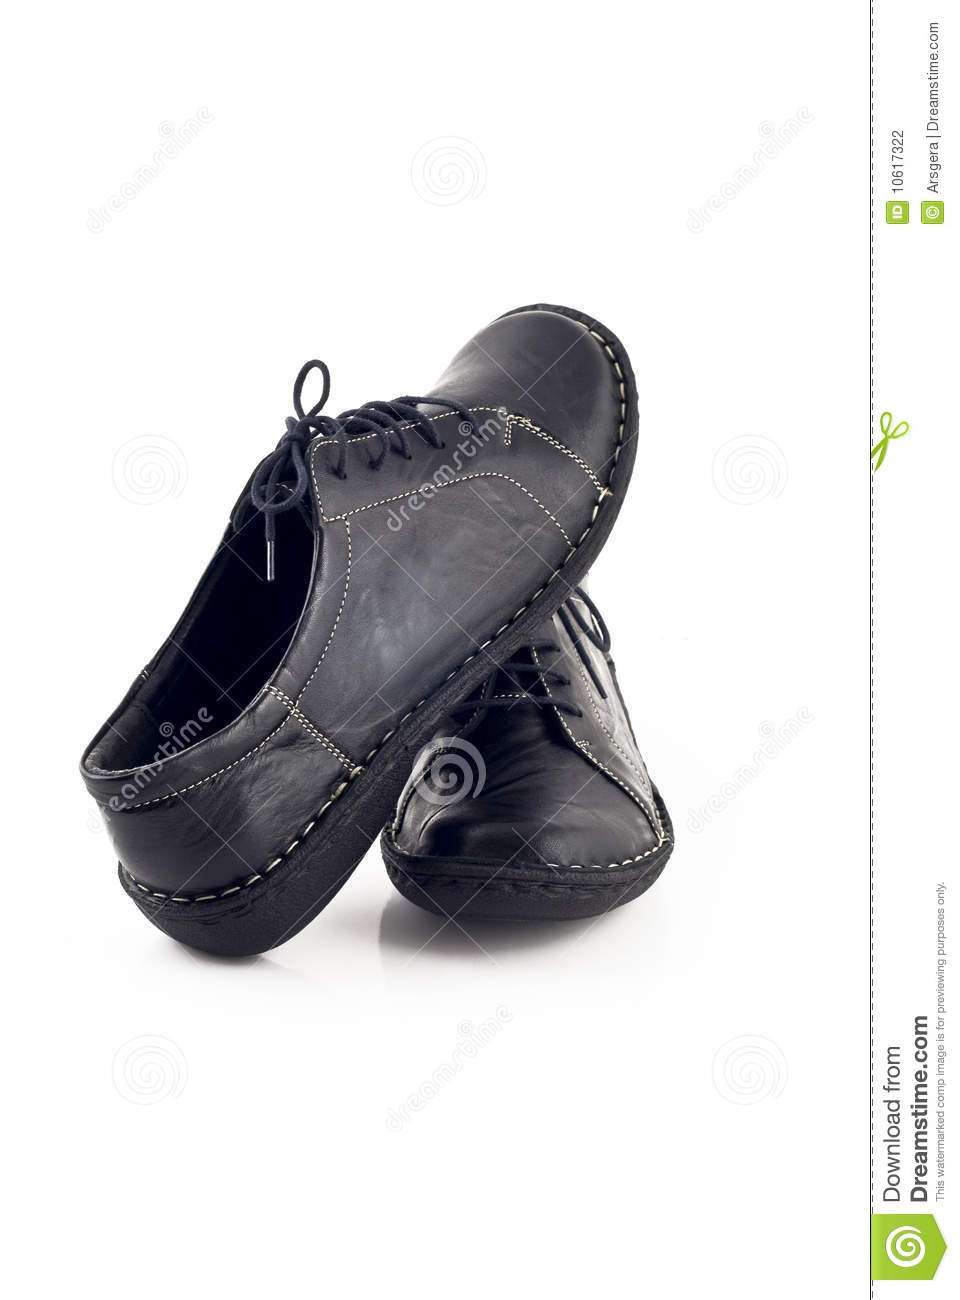 Pair Of Black Leather Shoes For Women Over White Stock Photography